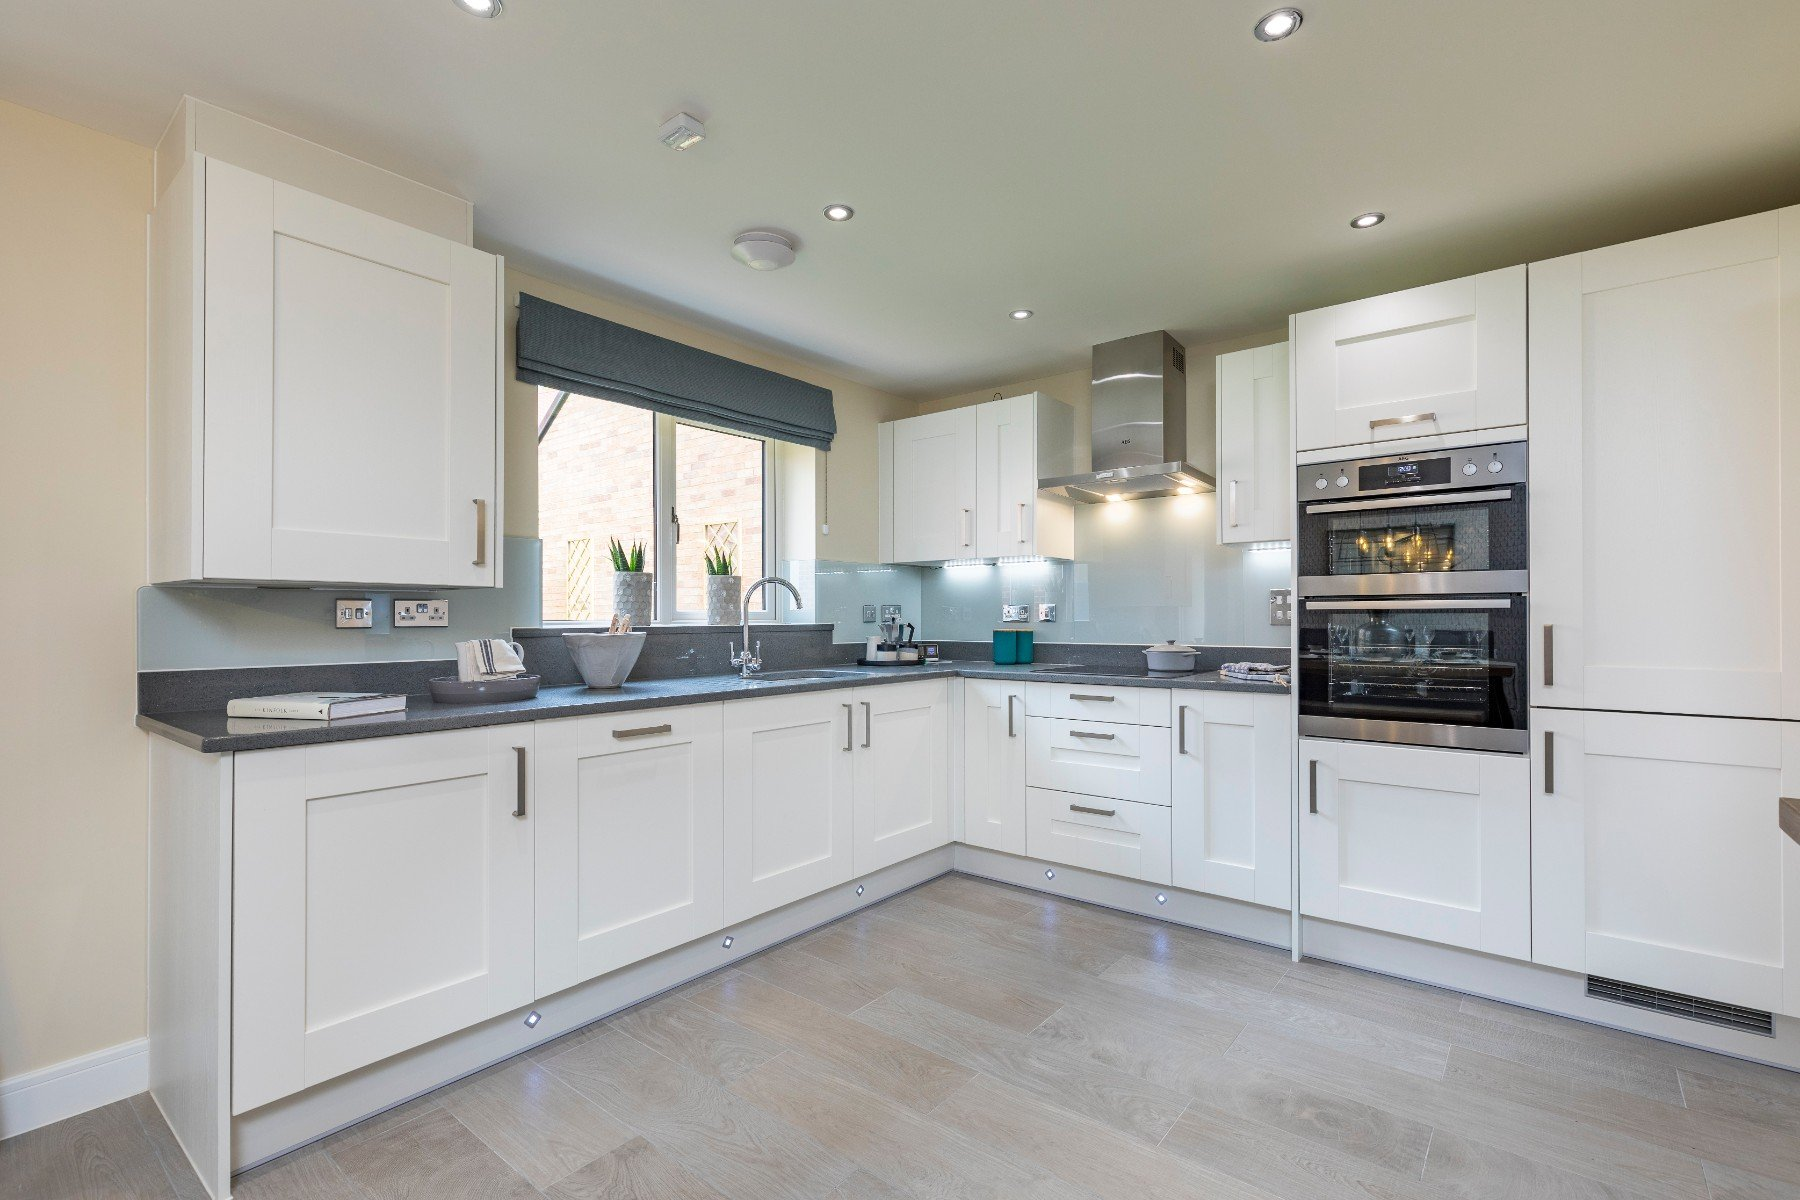 TWST - The Midford - Kitchen